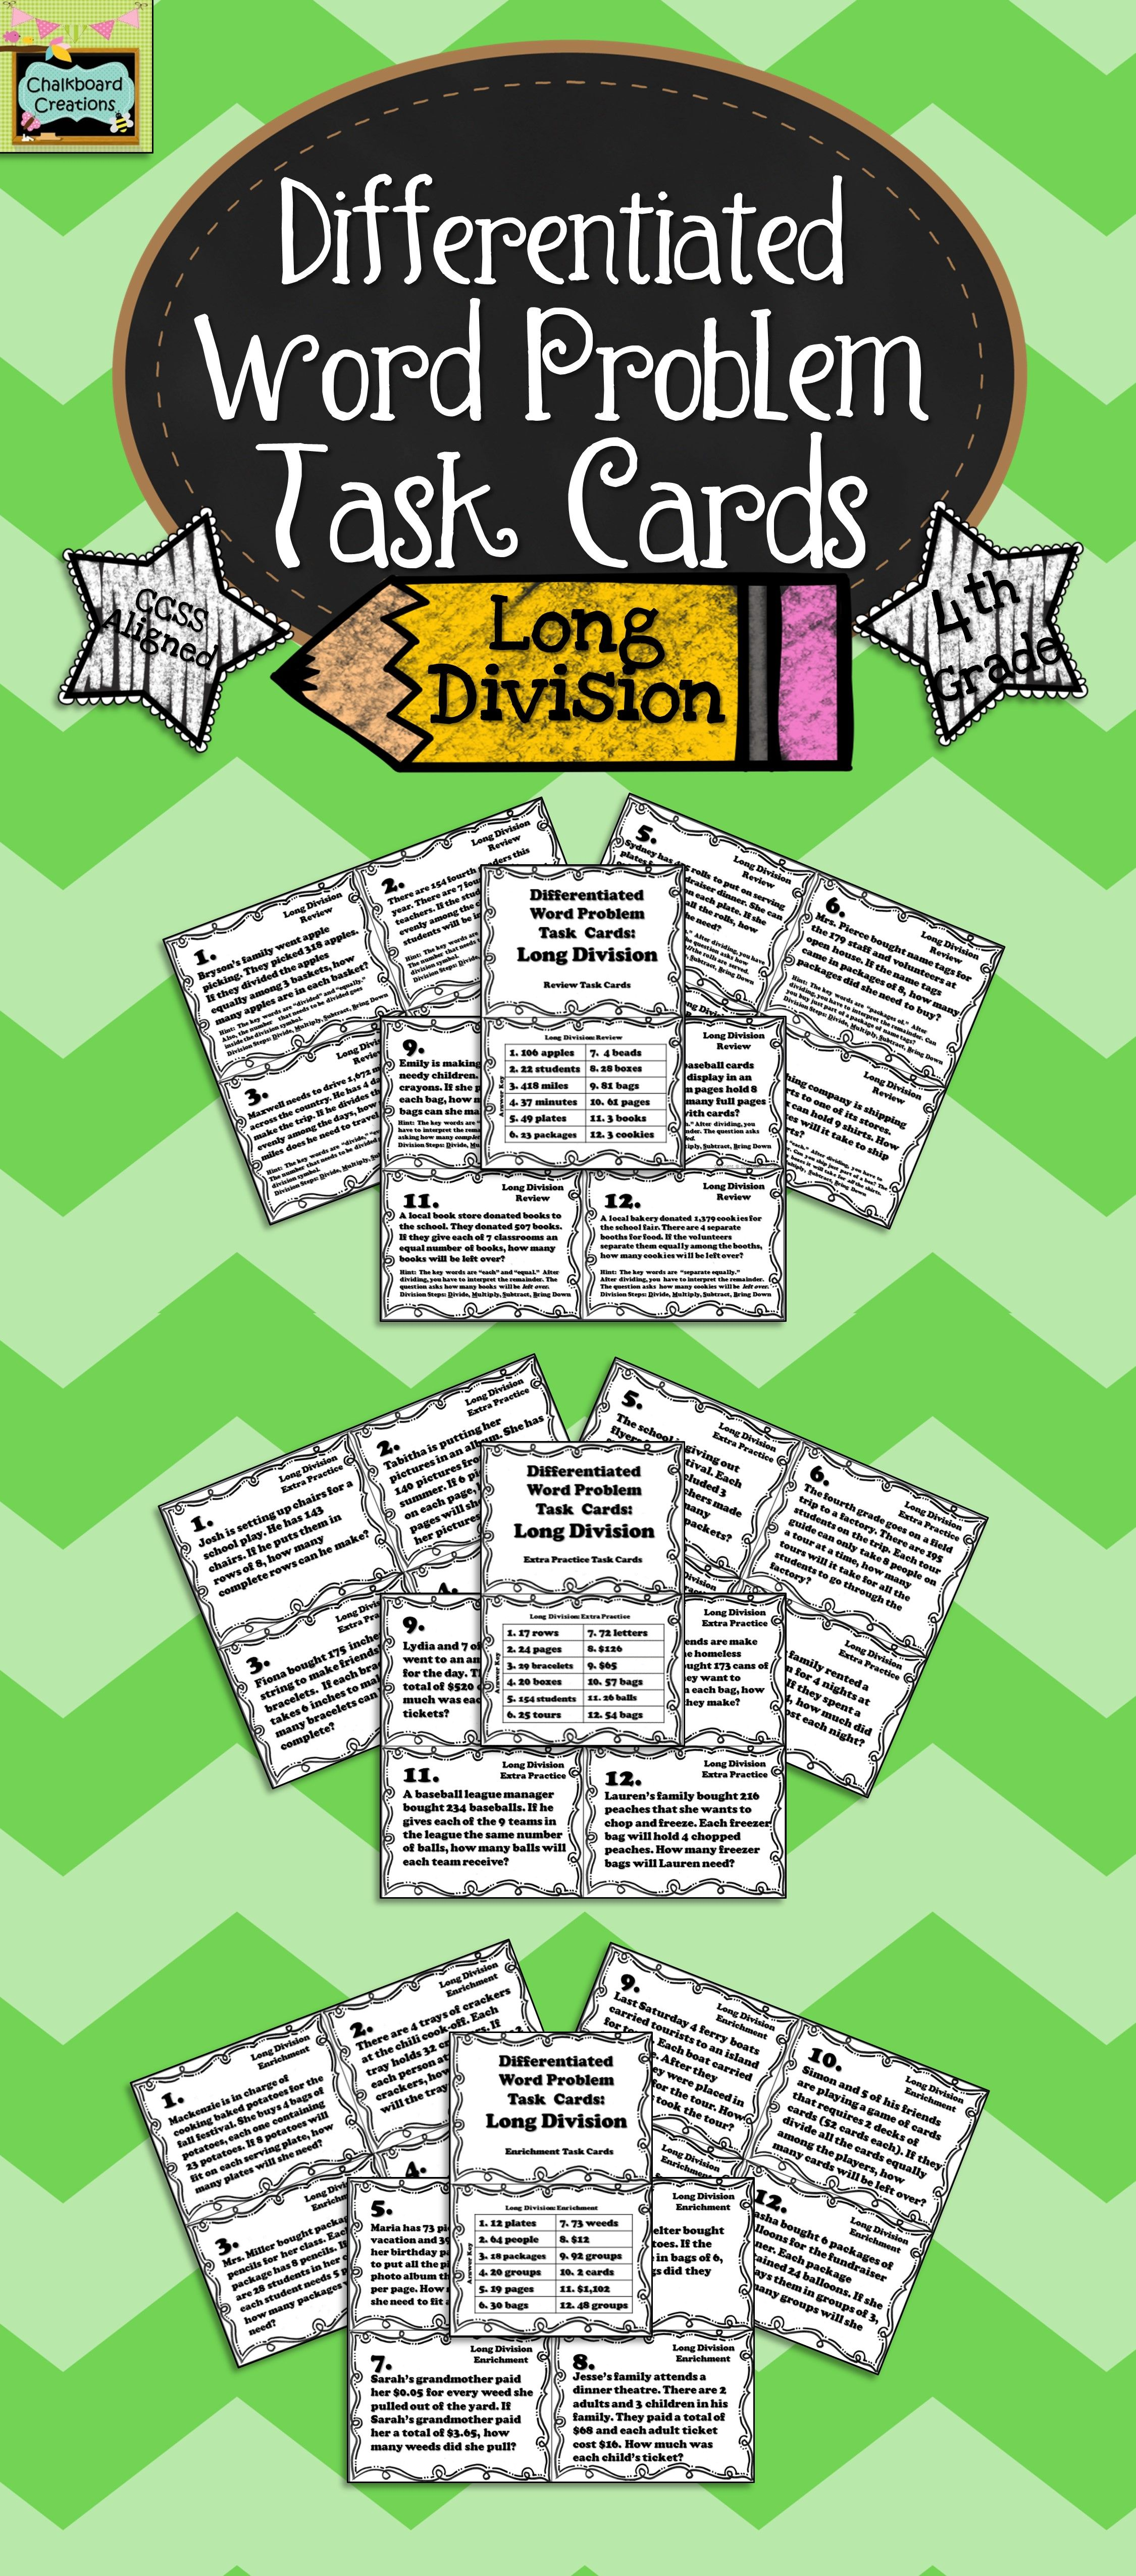 Differentiated Word Problem Task Cards Long Division